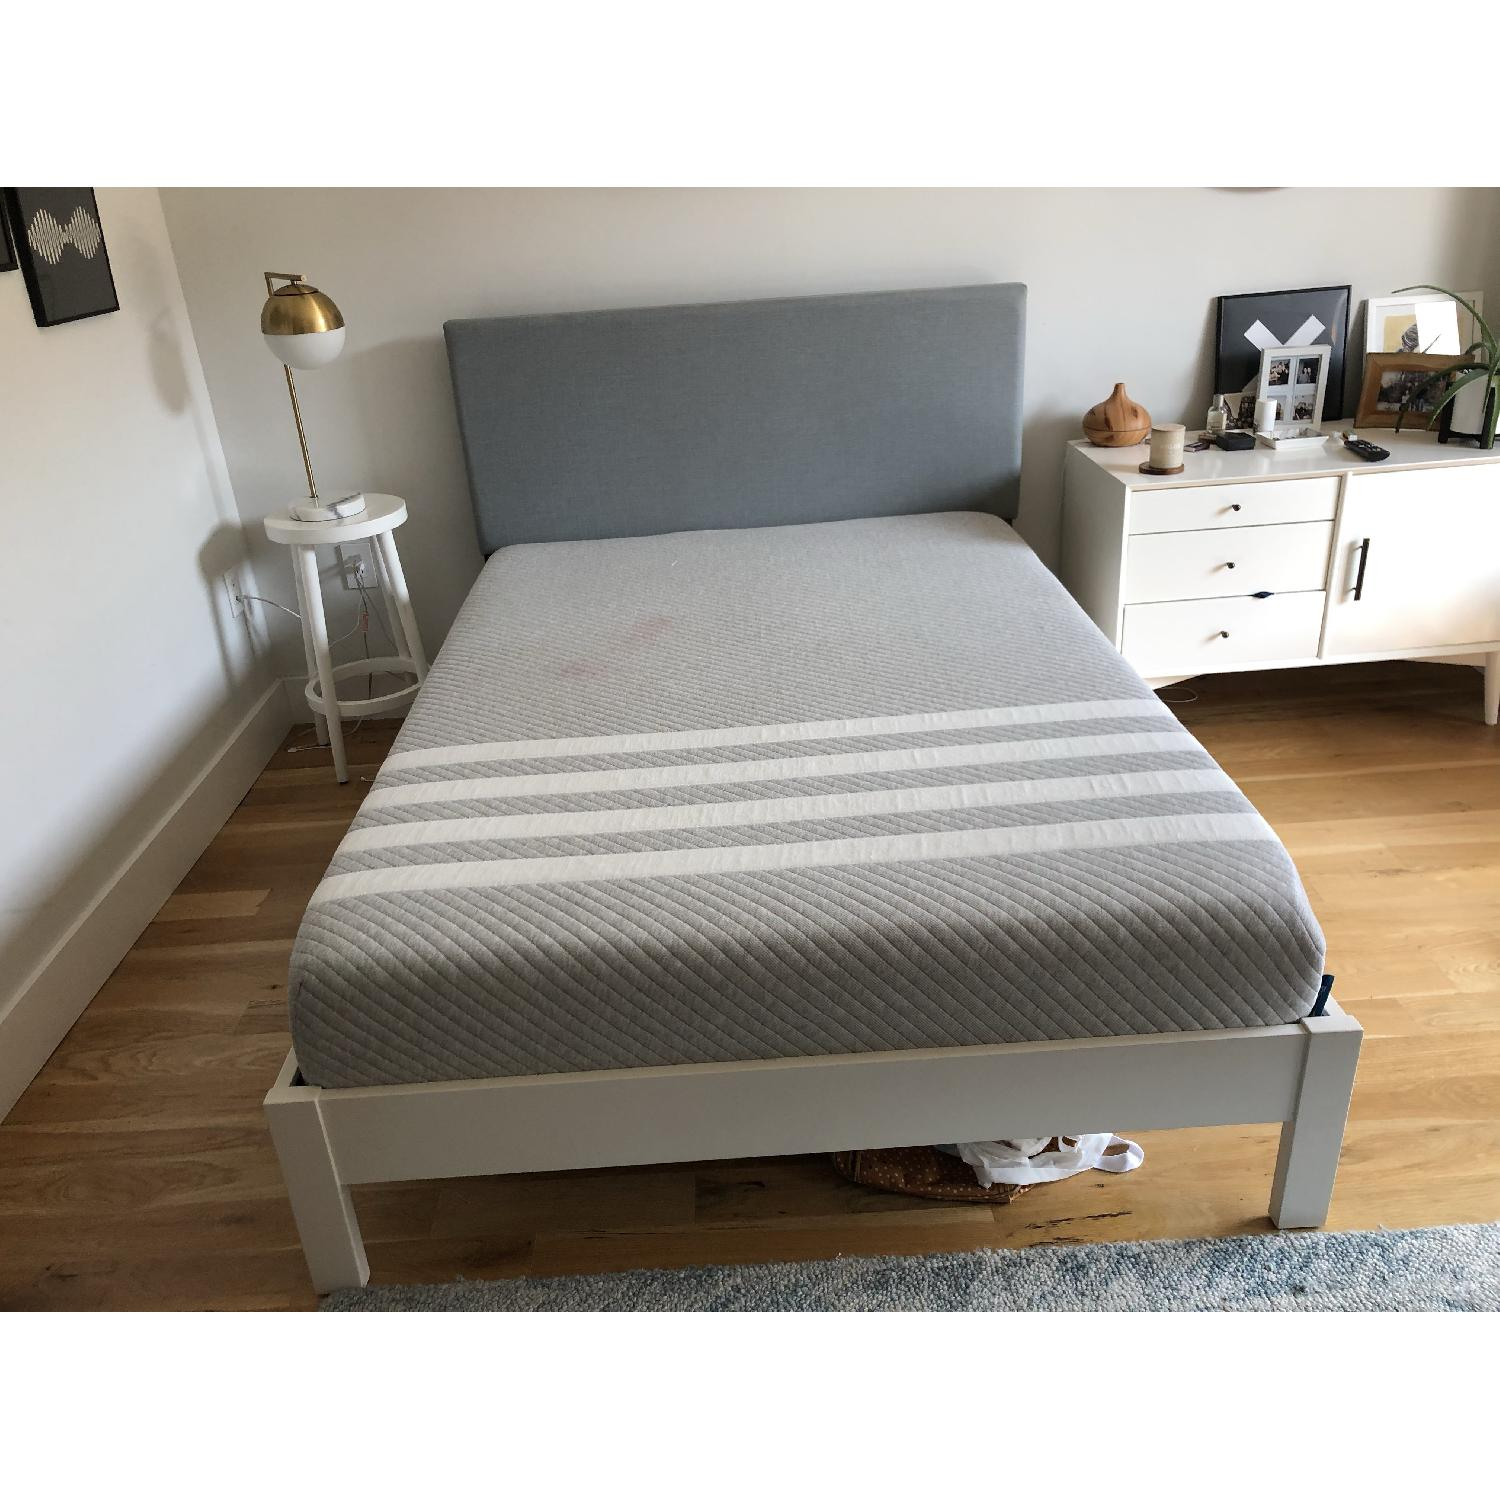 West Elm Simple Full Bed Frame in White Lacquer w/ Headboard - image-2